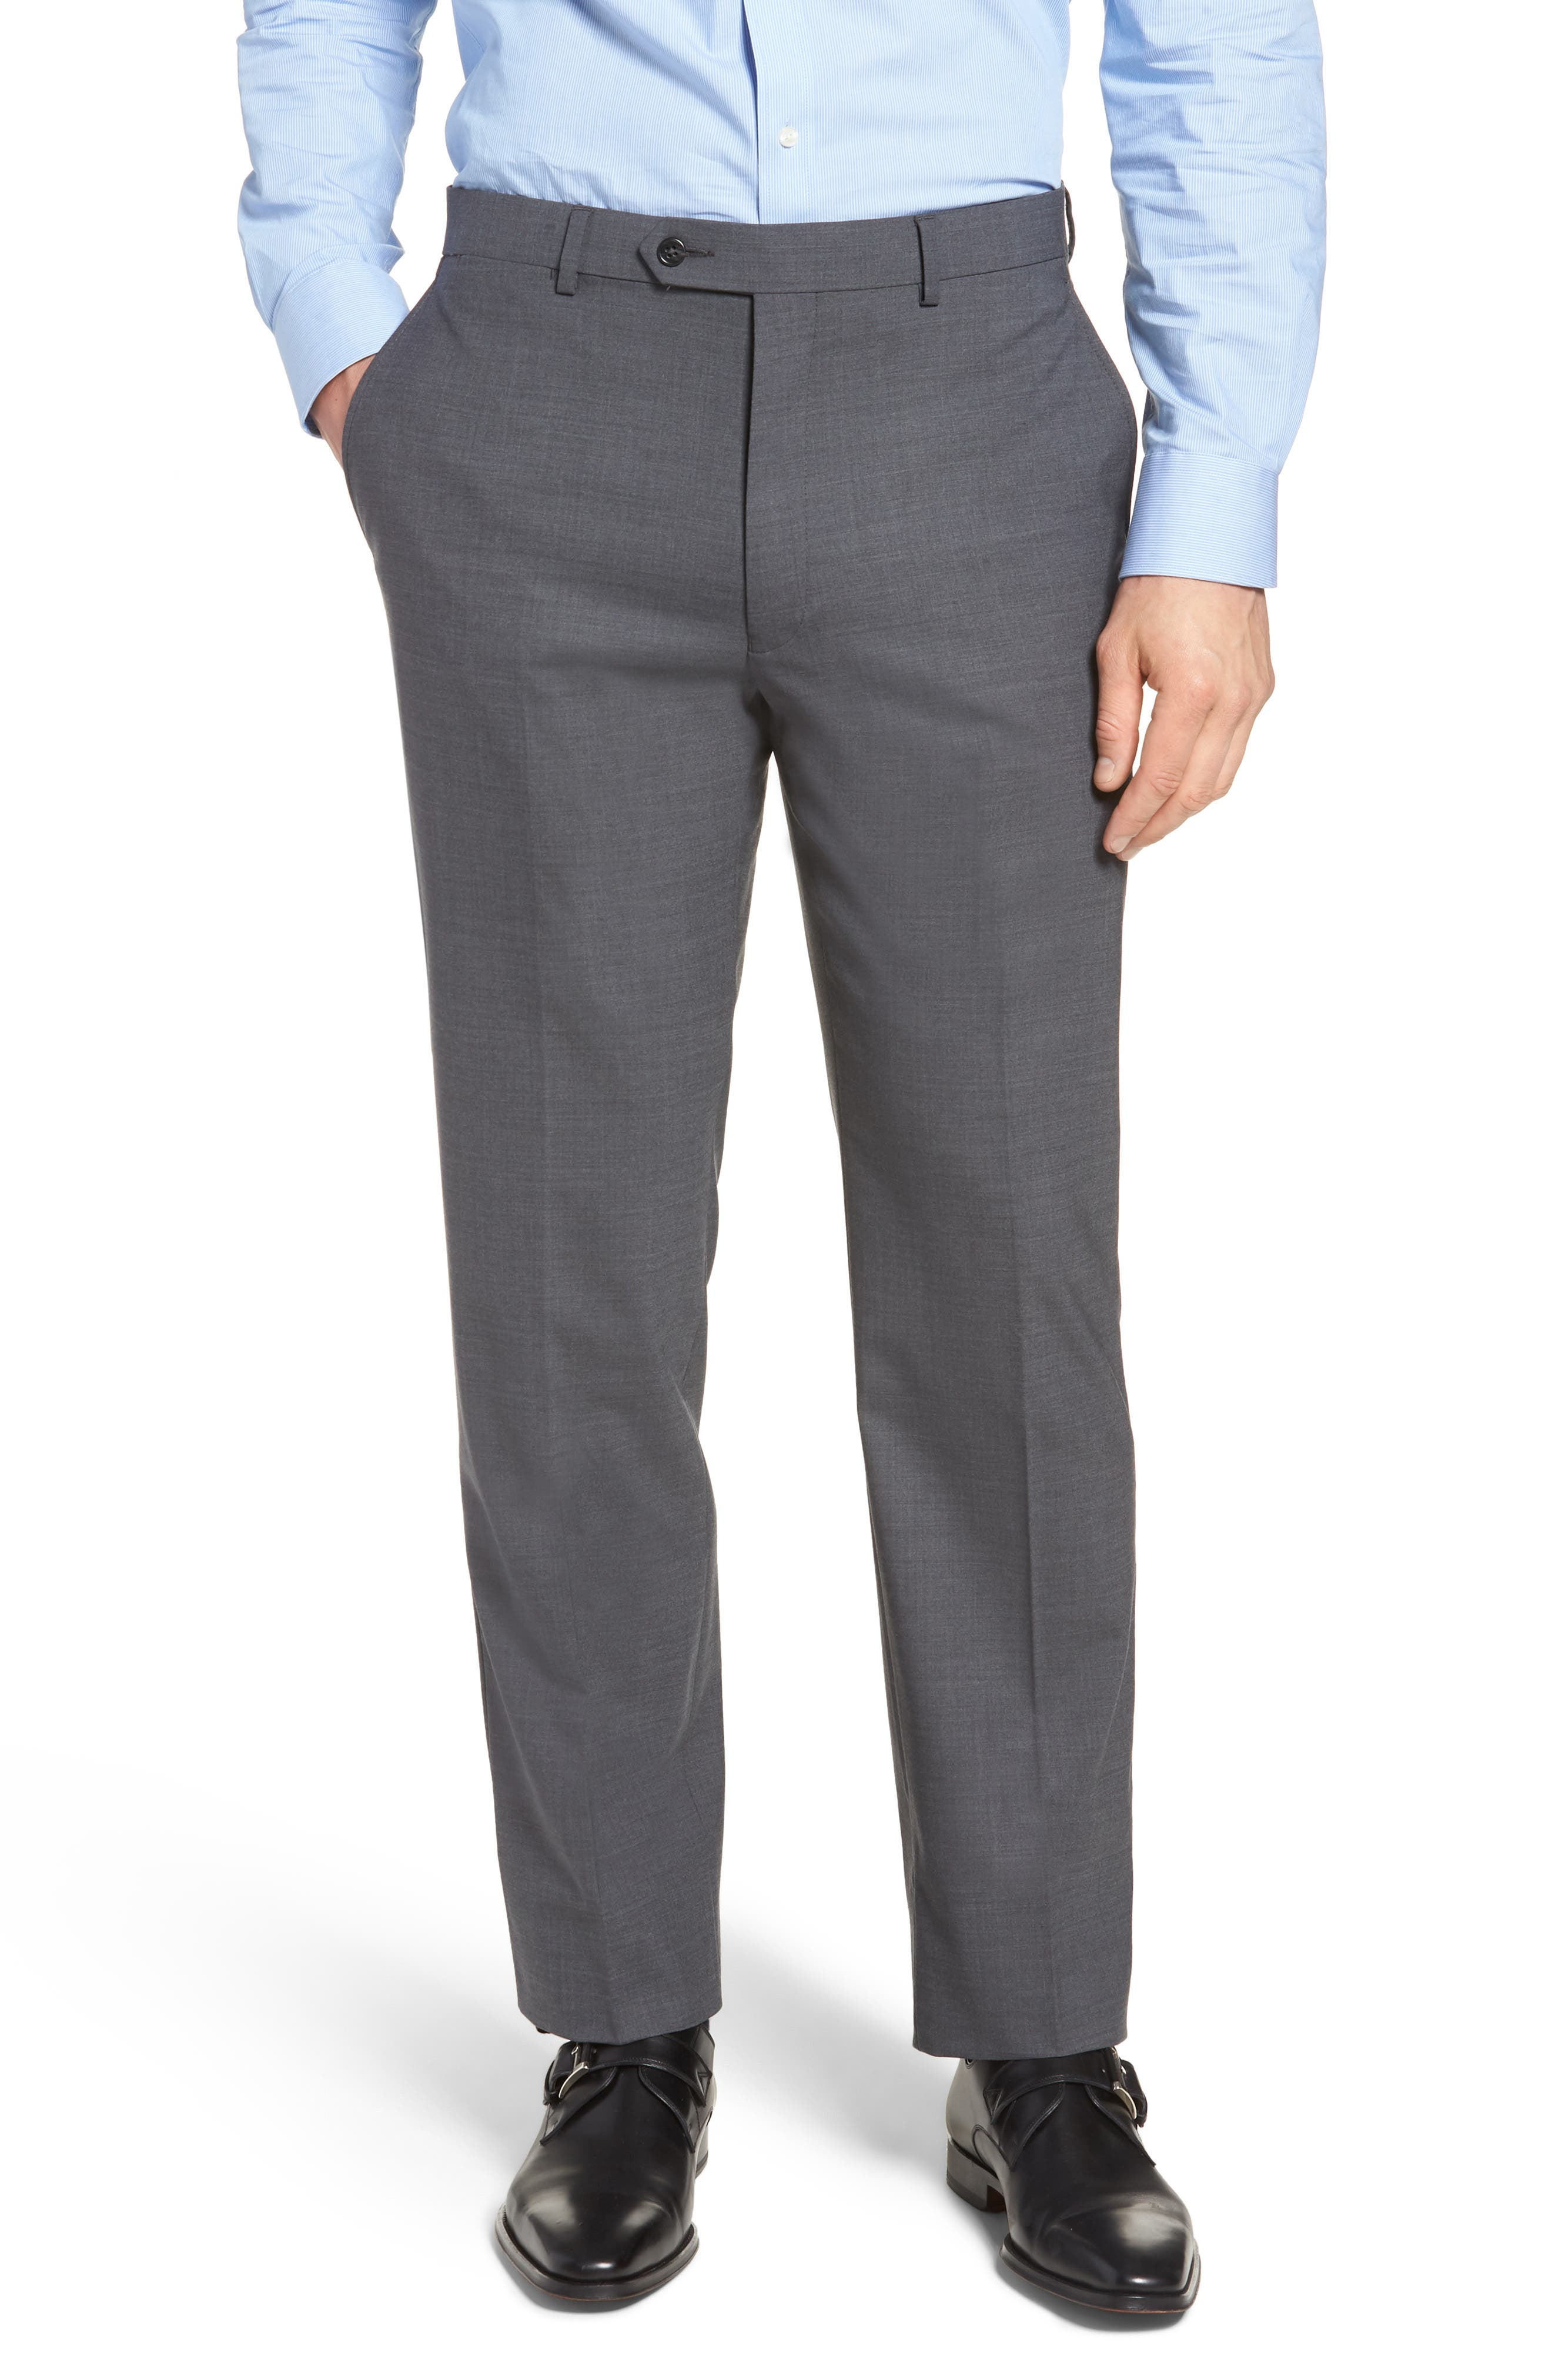 Hart Schaffner Marx New York Flat Front Stretch Solid Wool Trousers